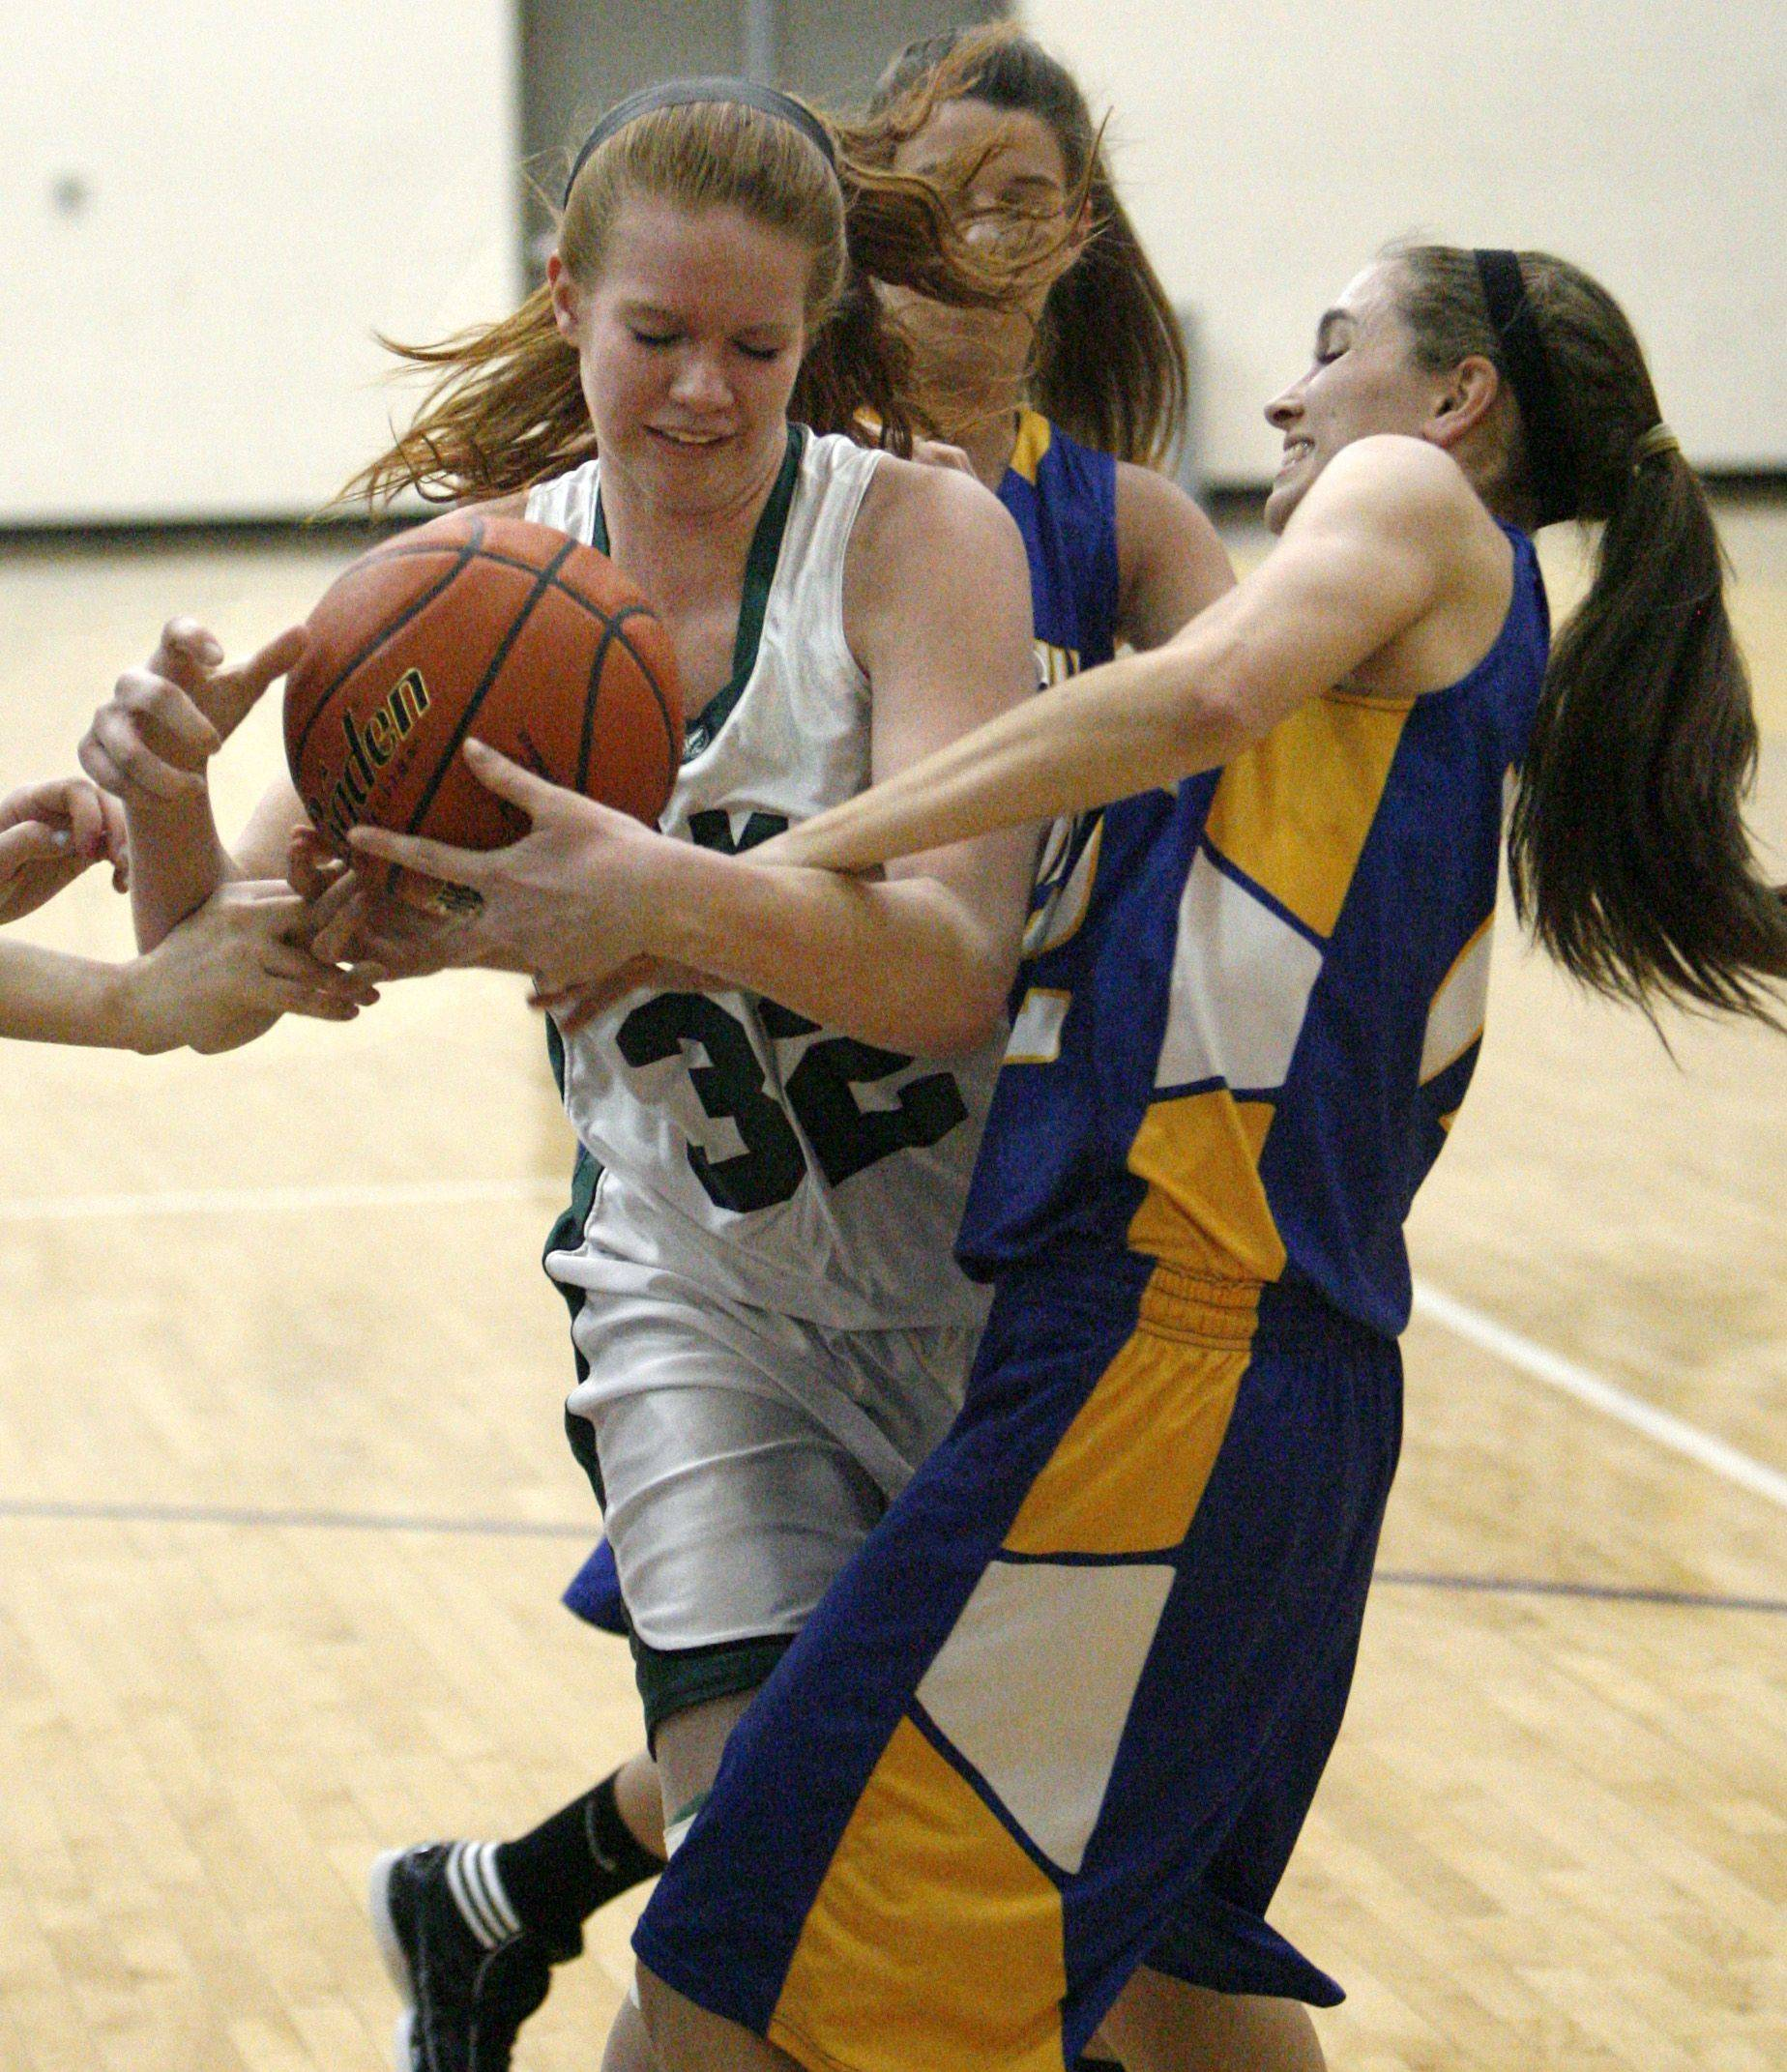 Grayslake Central's Morgan Dahlstrom pulls in an offensive rebound against Johnsburg defender Stephanie Cherwin in Class 3A regional final play Friday.